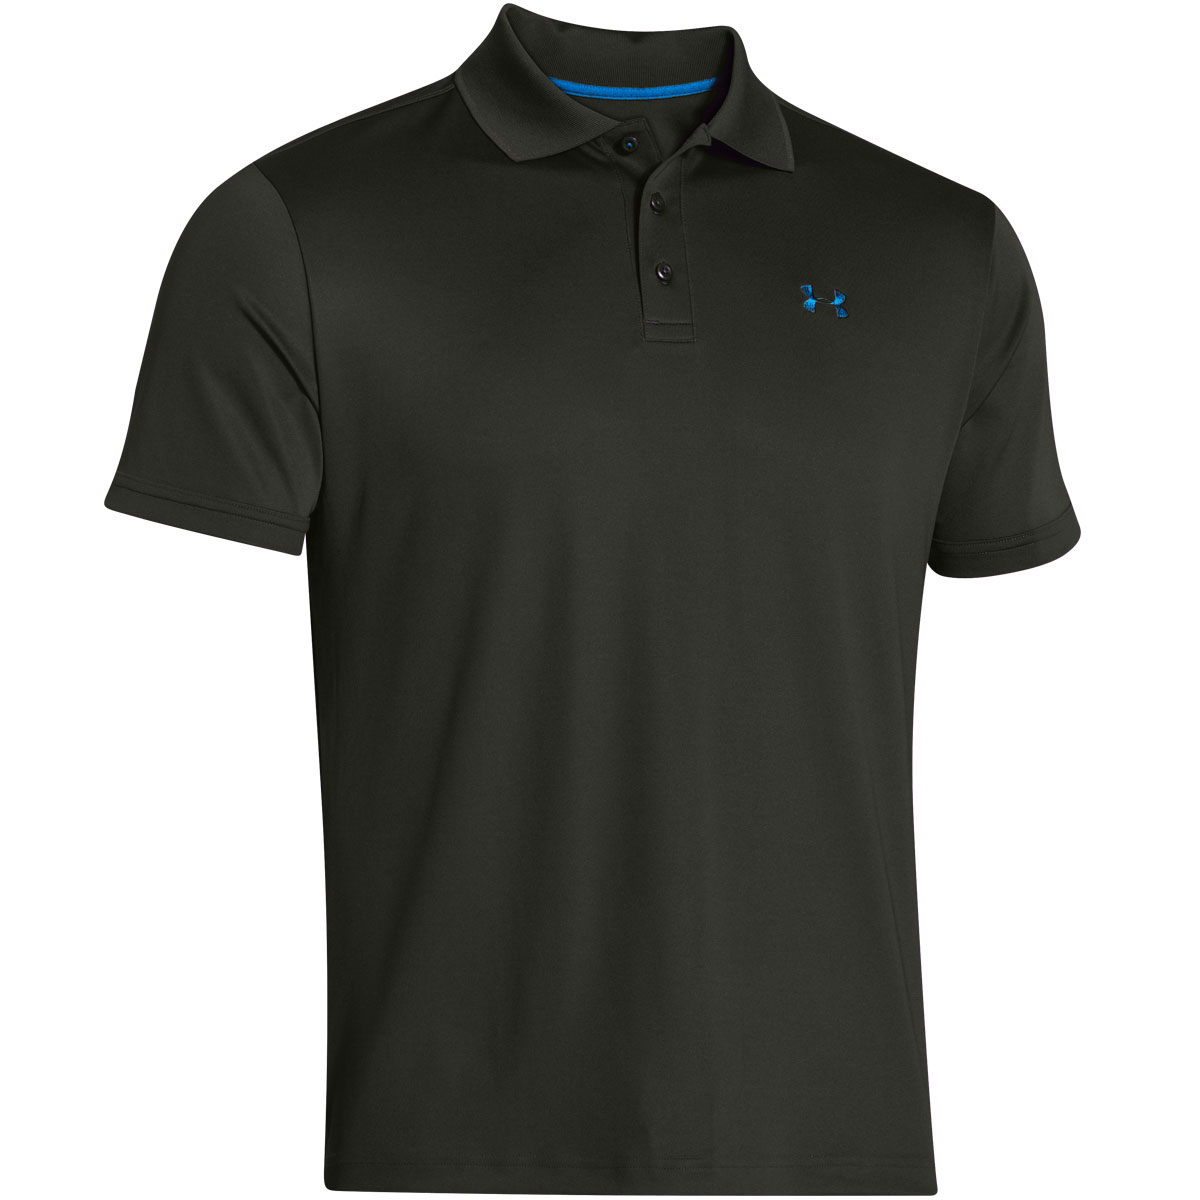 Under armour 2017 mens ua performance tech short sleeve for Under armor business shirts